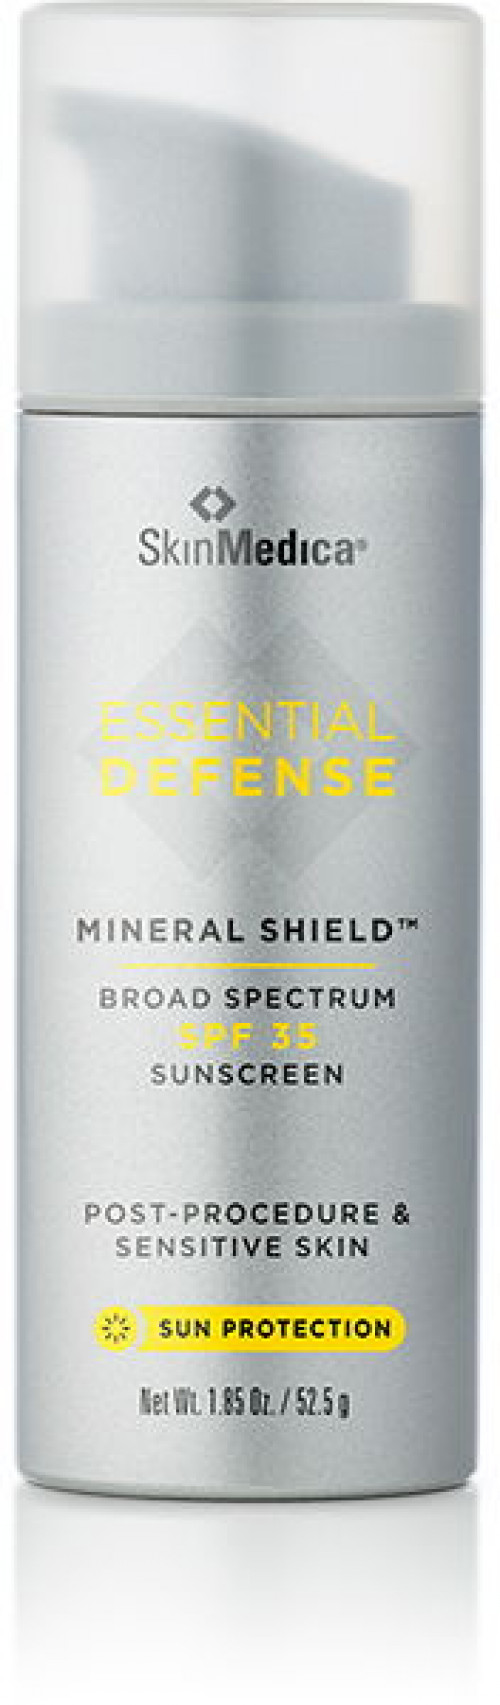 Essential Defense Mineral Shield by Skinmedica